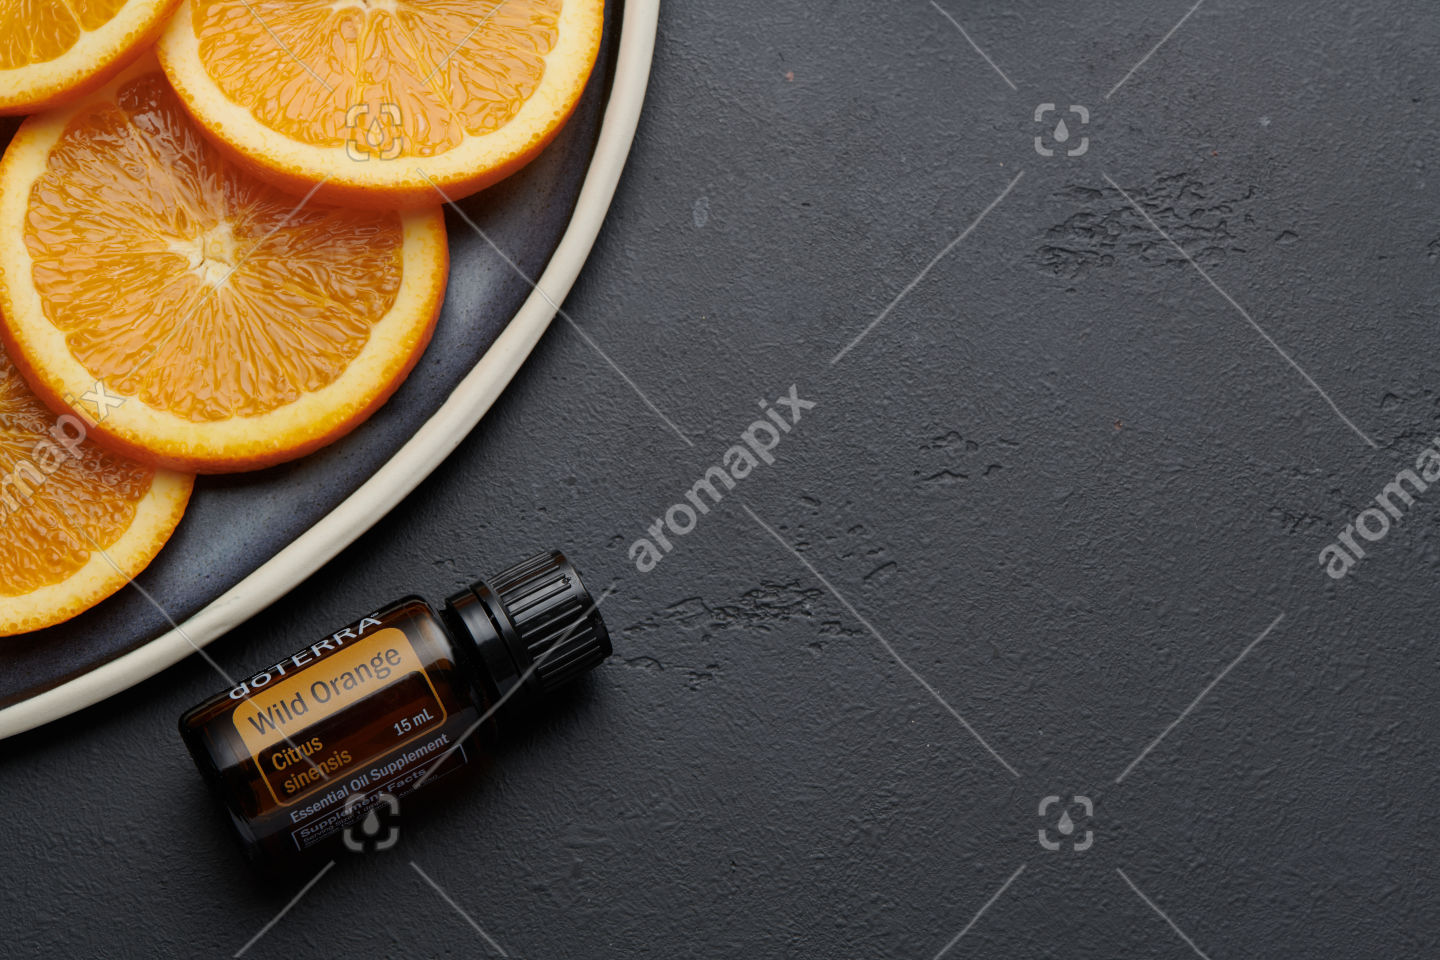 doTERRA Wild Orange product and slices on ceramic plate